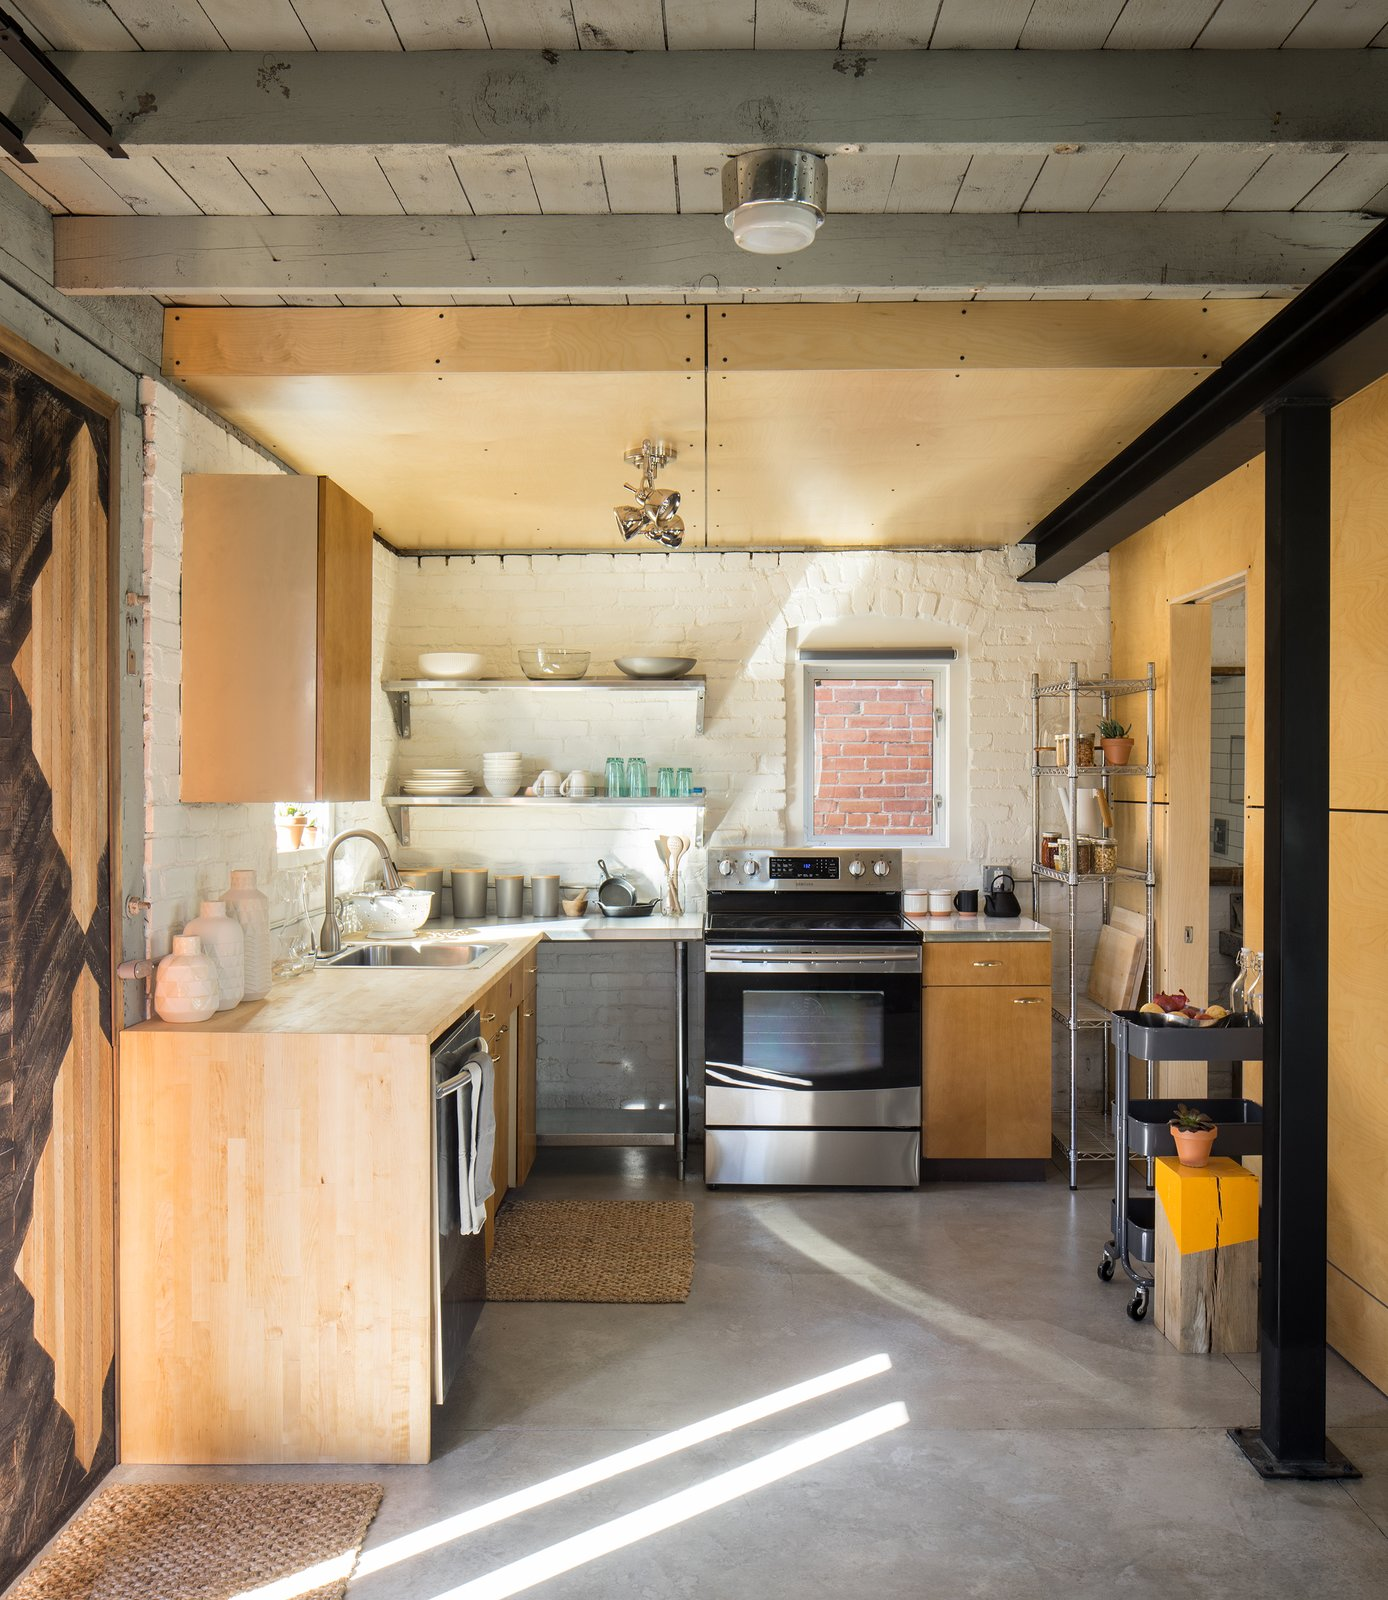 Kitchen, Wood, Metal, Concrete, Brick, Ceiling, Range, Dishwasher, and Drop In White paint brightens the modest kitchen of this Denver home.   Kitchen Concrete Metal Ceiling Photos from Blacksmith Shop